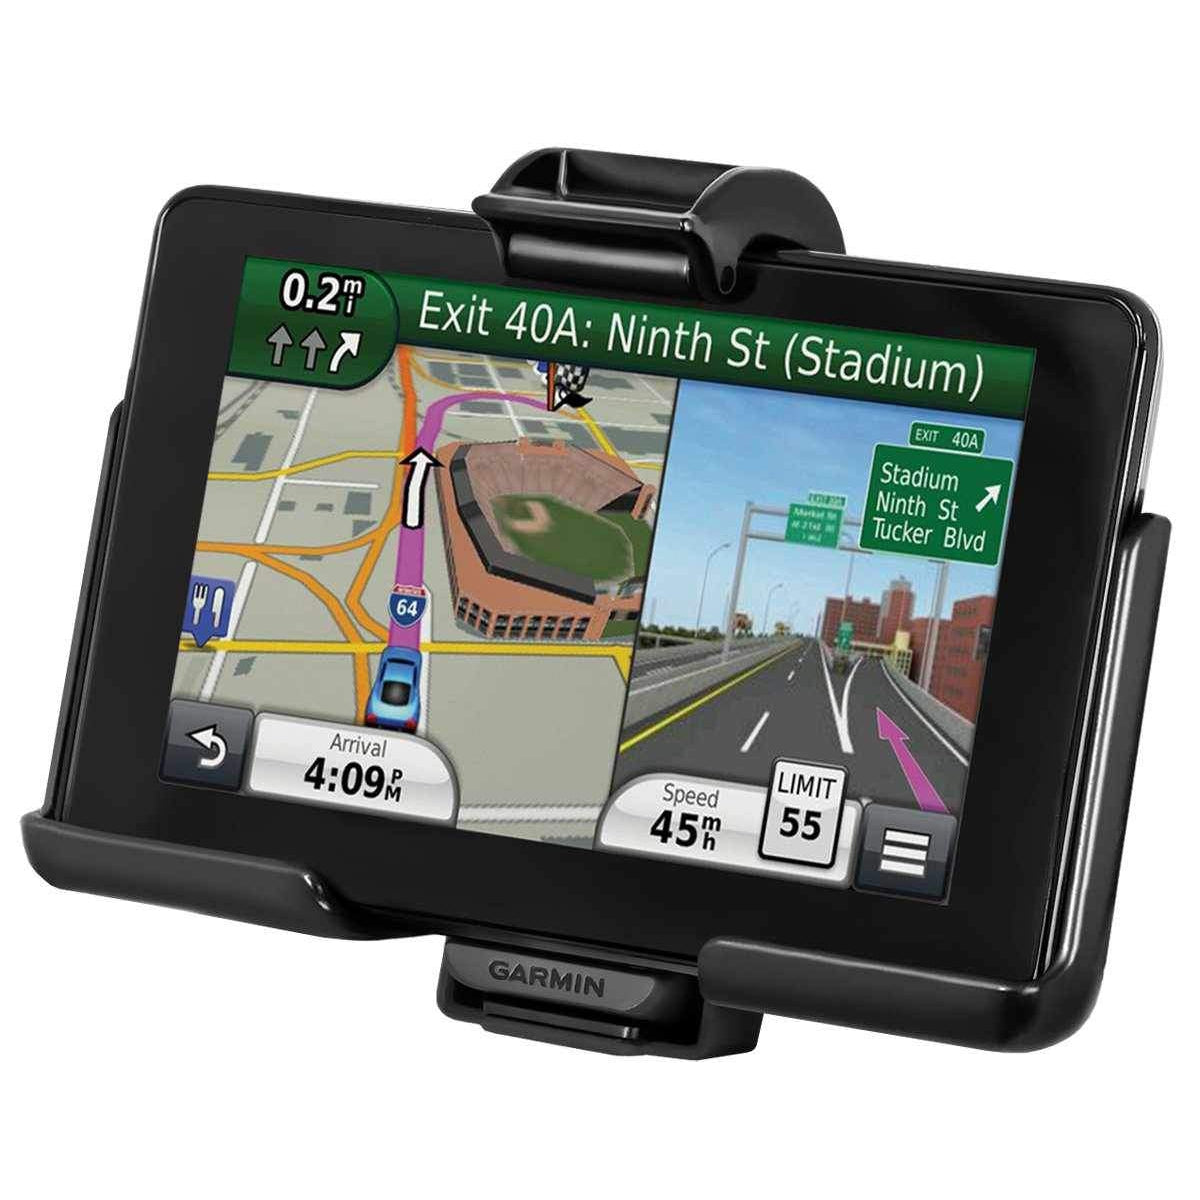 RAM Holder for Garmin nuvi 3550LM & 3590LMT (RAM-HOL-GA53U) - Modest Mounts